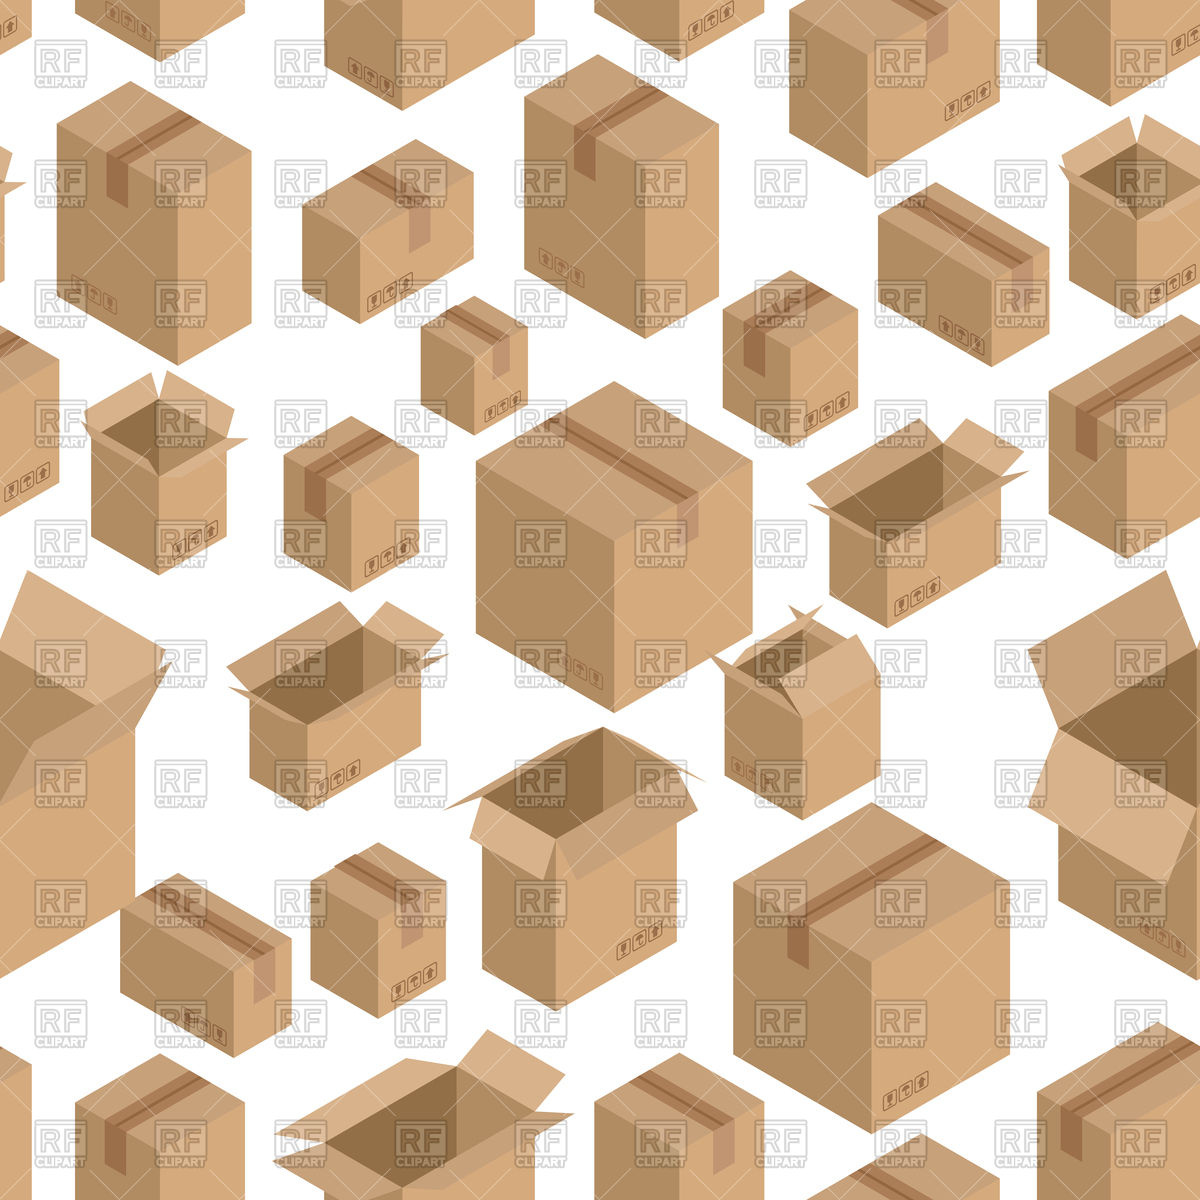 1200x1200 Seamless Pattern With Cardboard Box, Paper Packaging Vector Image